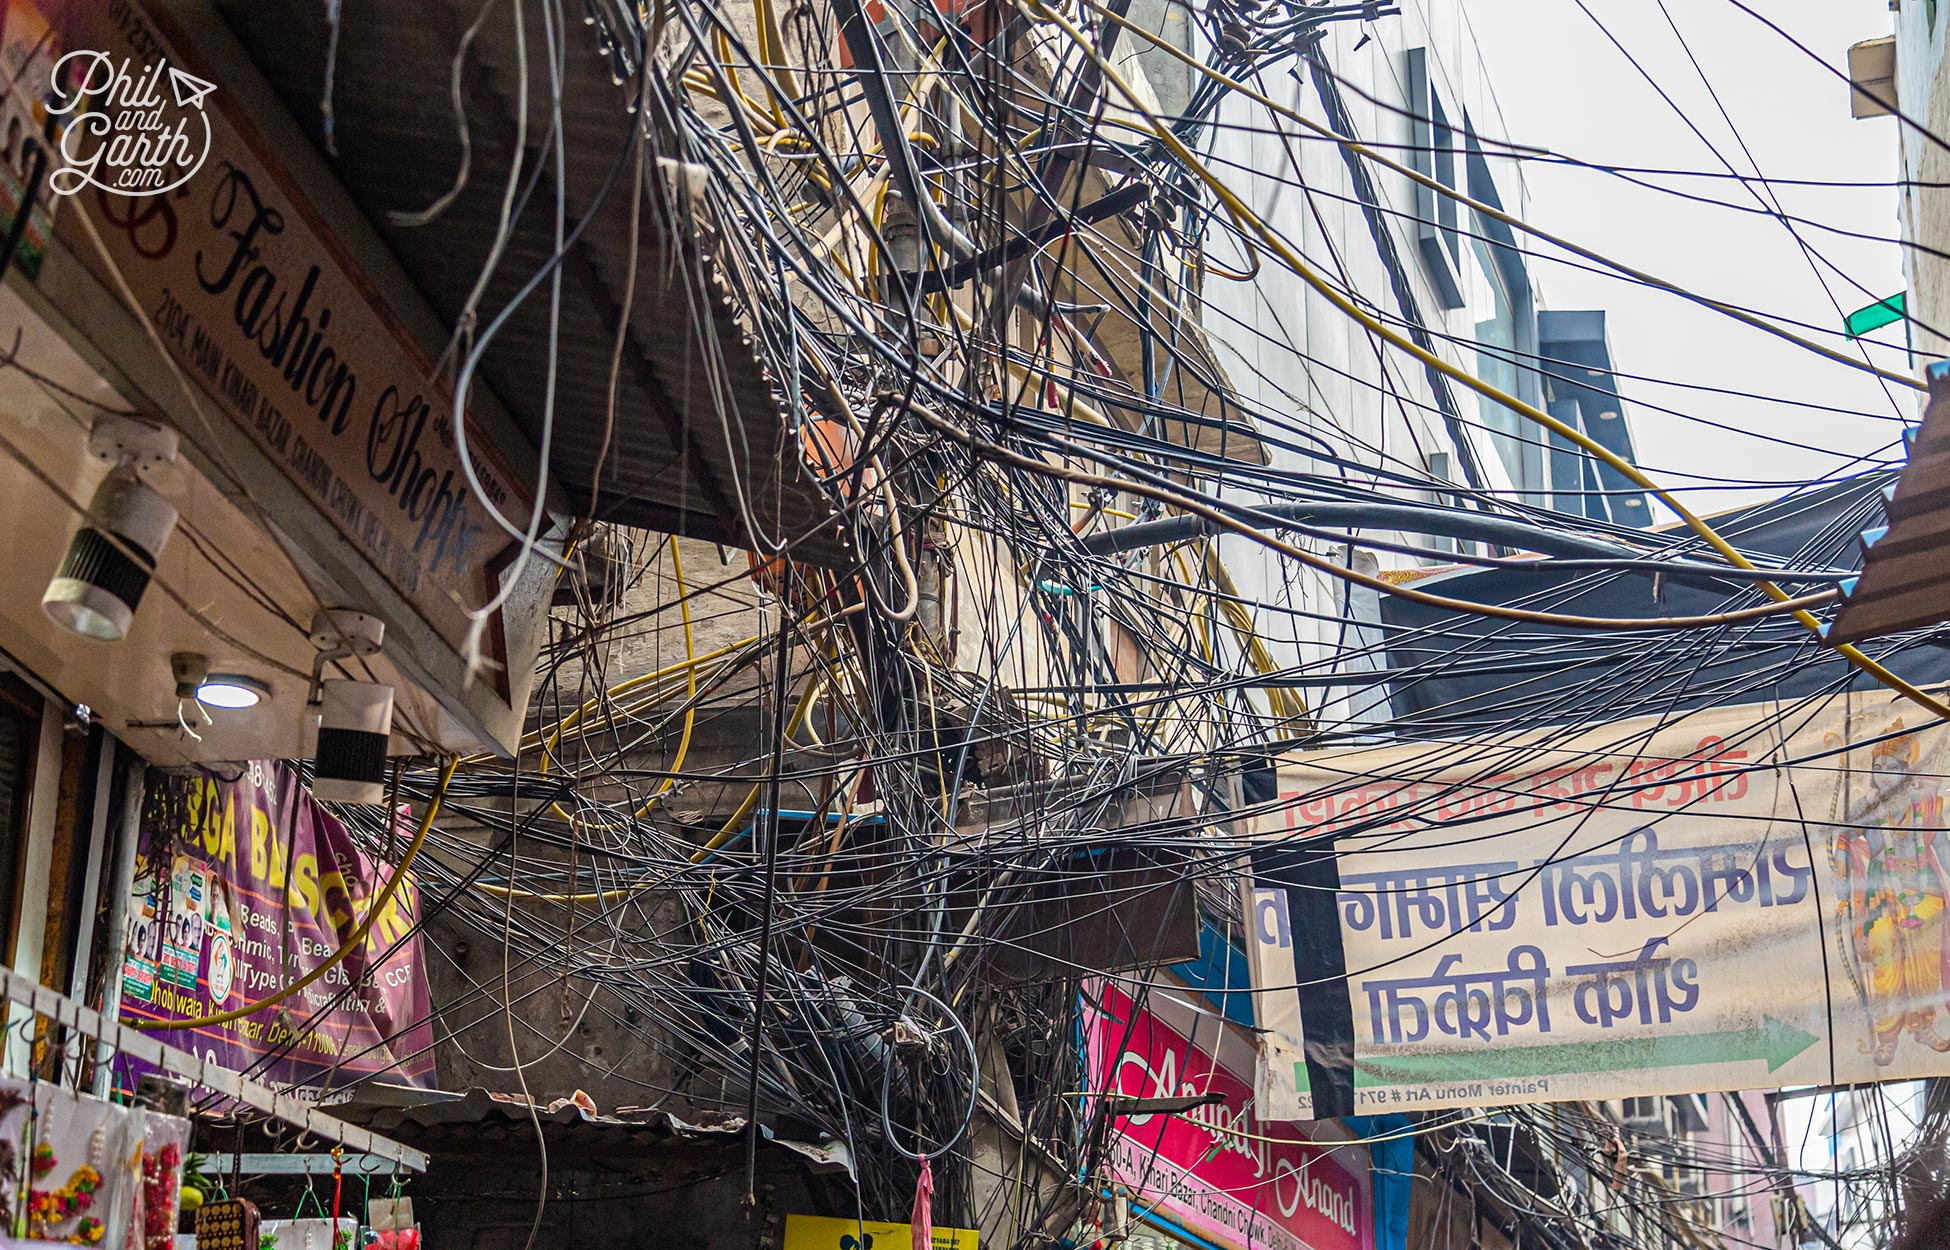 Check out that tangle of wires